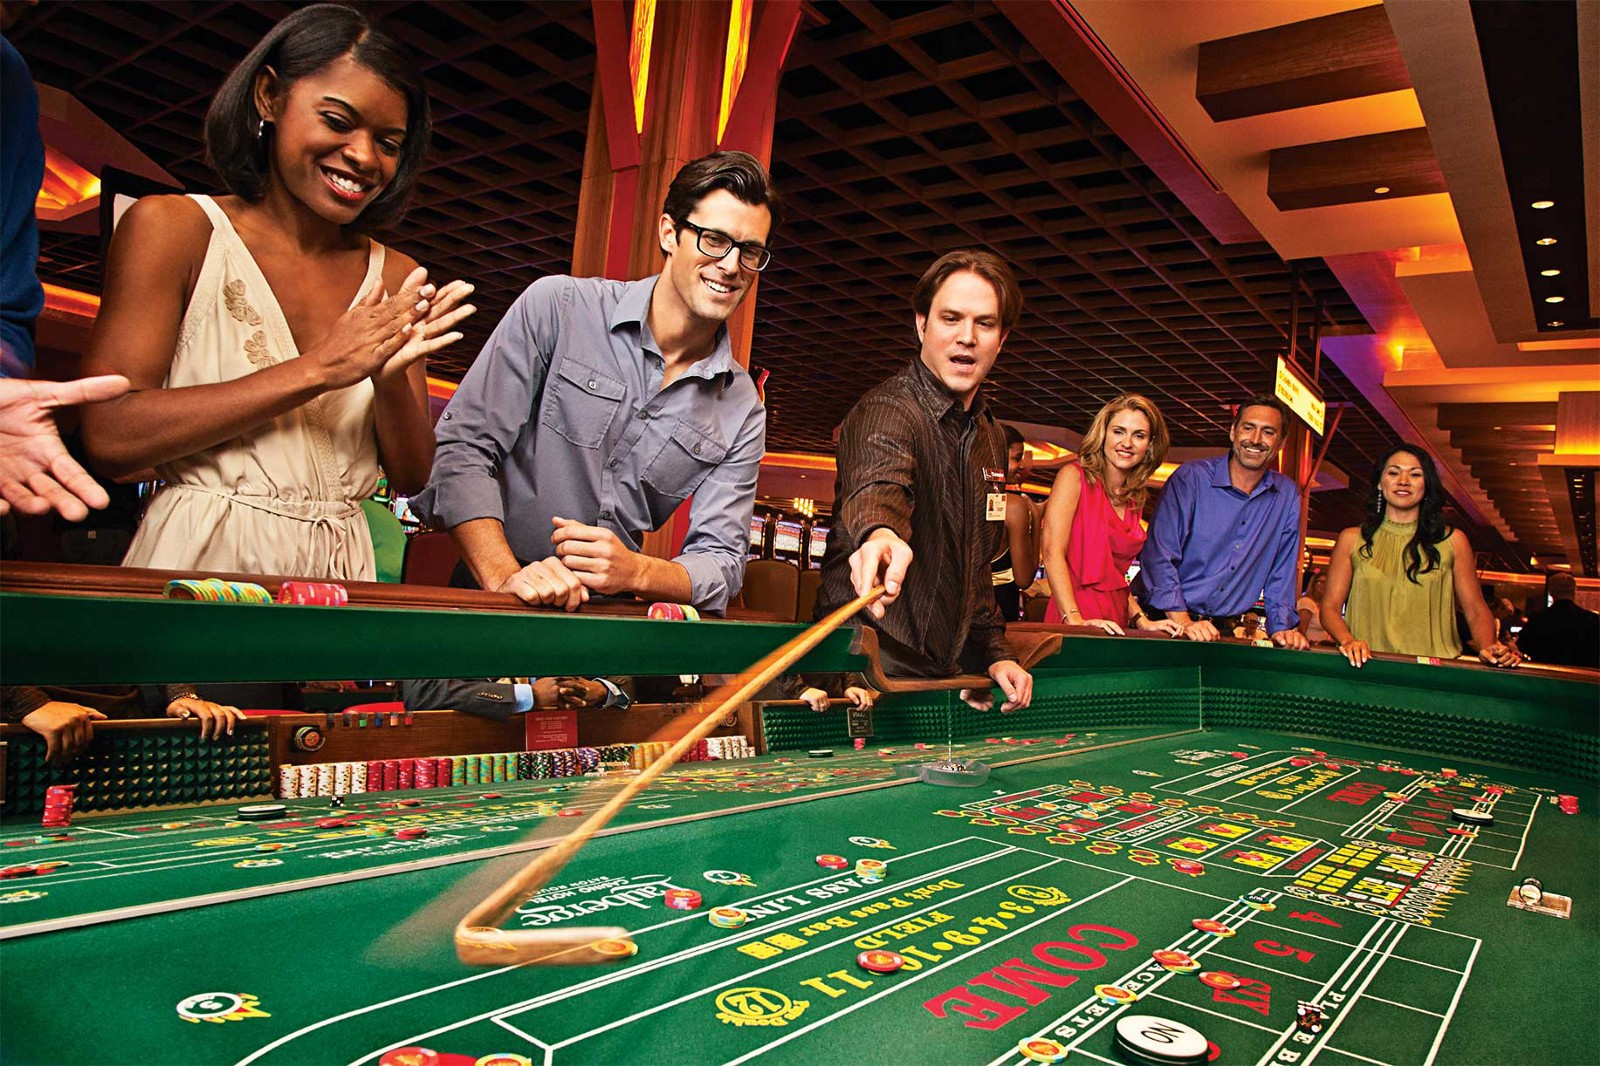 The important aspects of the online casino sites